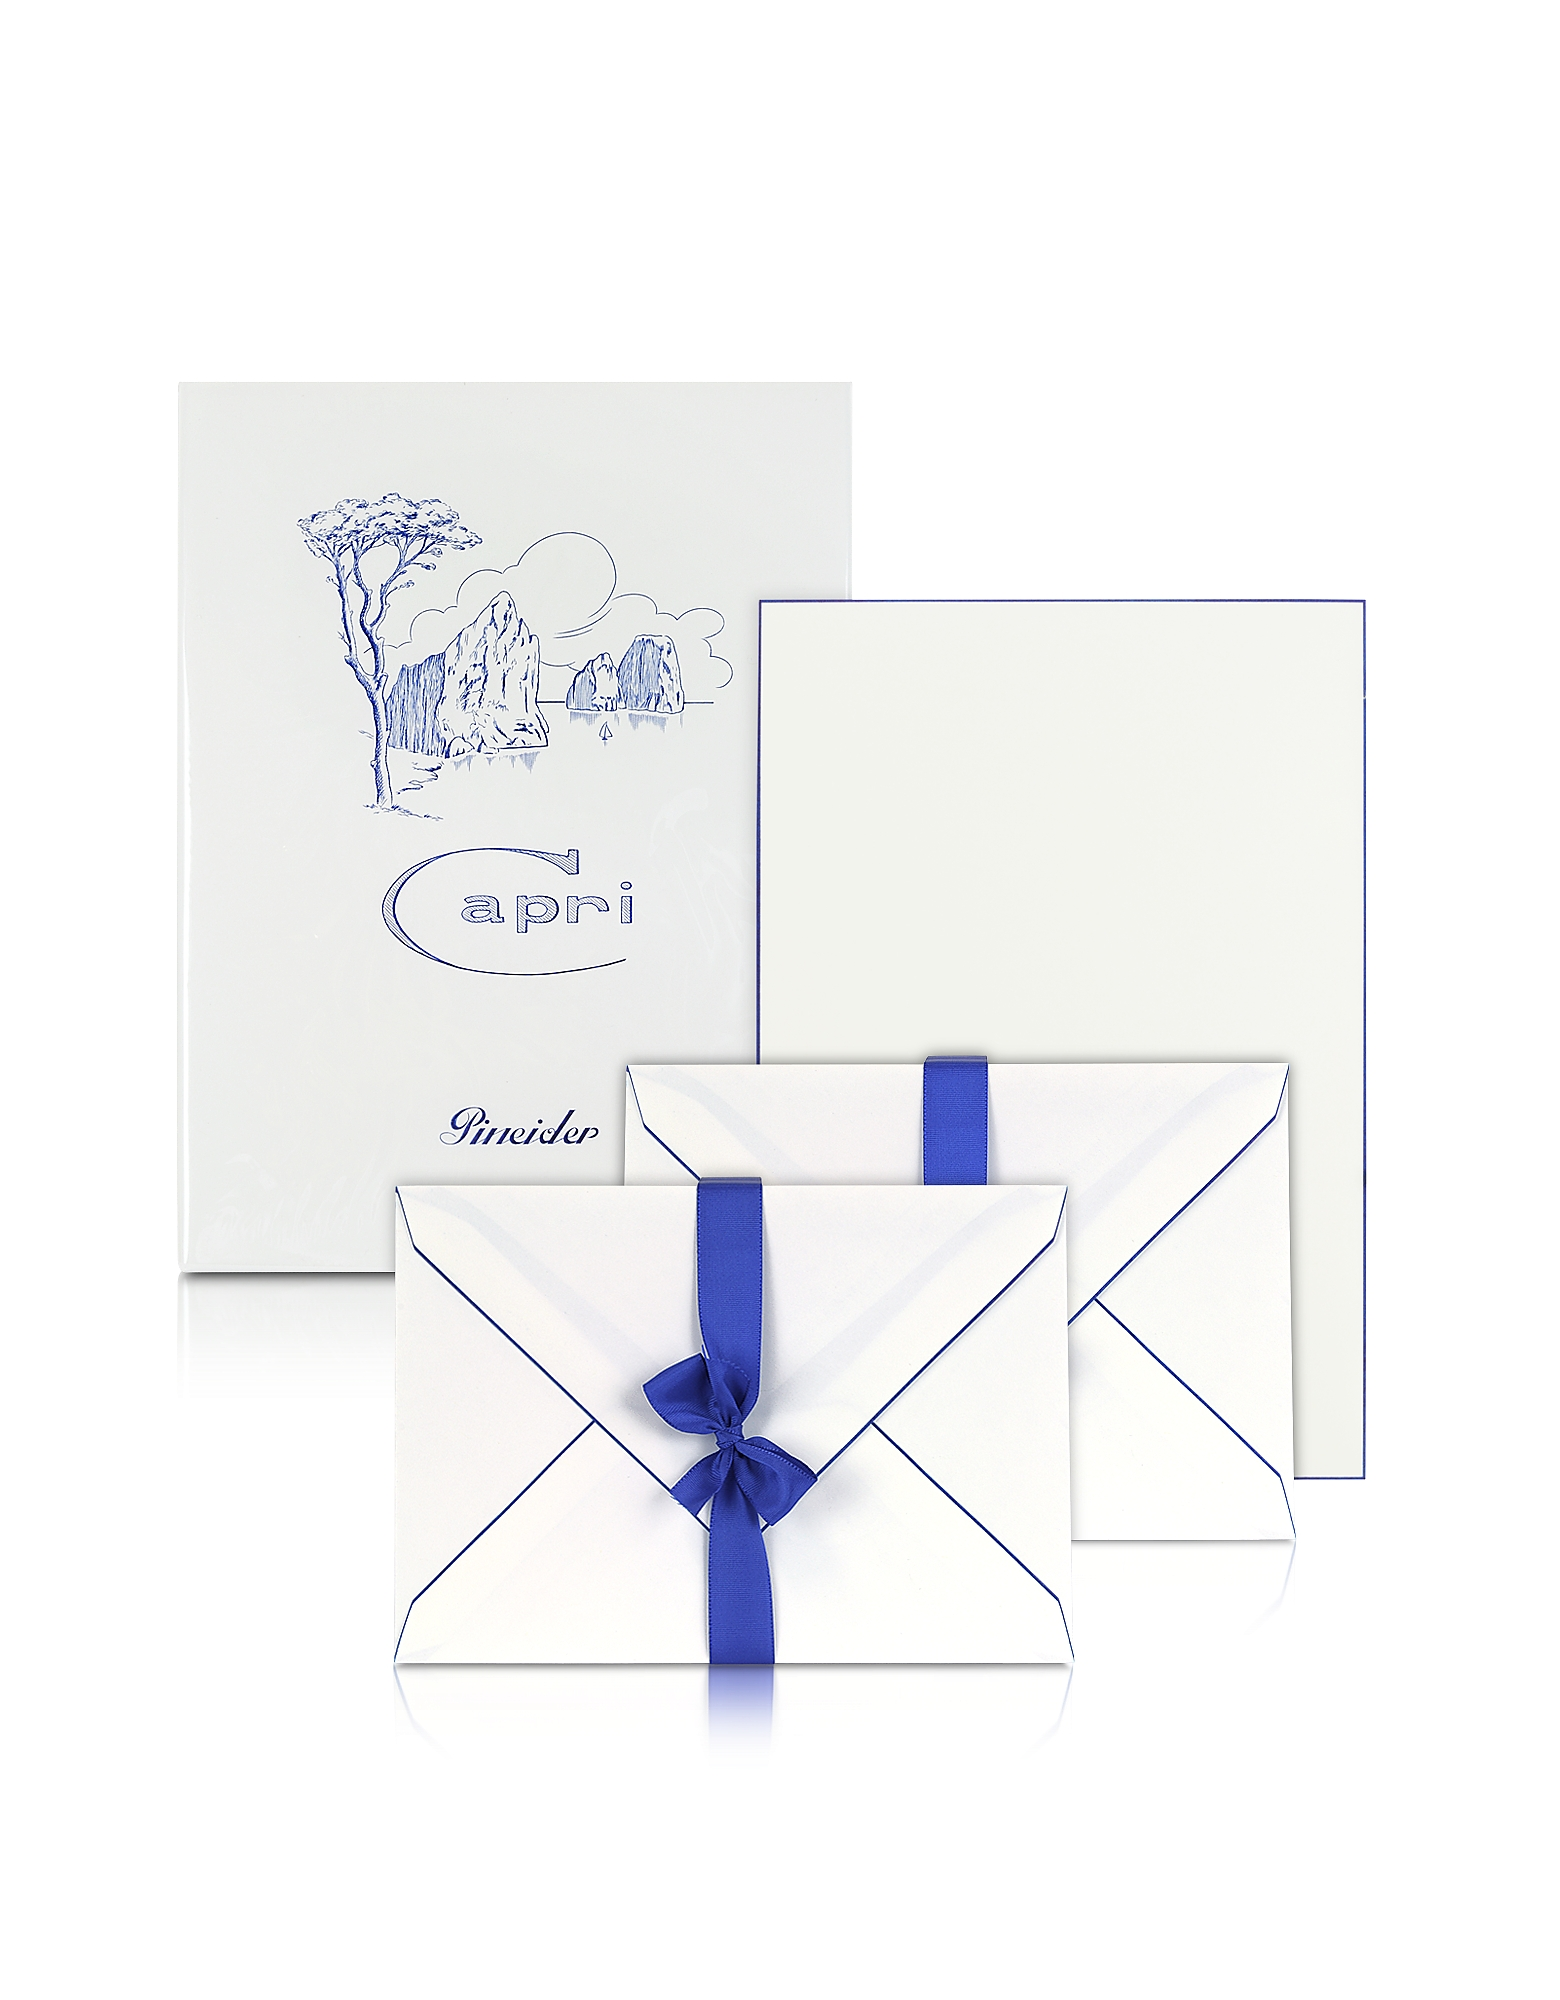 Pineider Designer Desk Accessories, Capri - 50 Sheets White Letter Paper with Handpainted Border pn341411-003-00